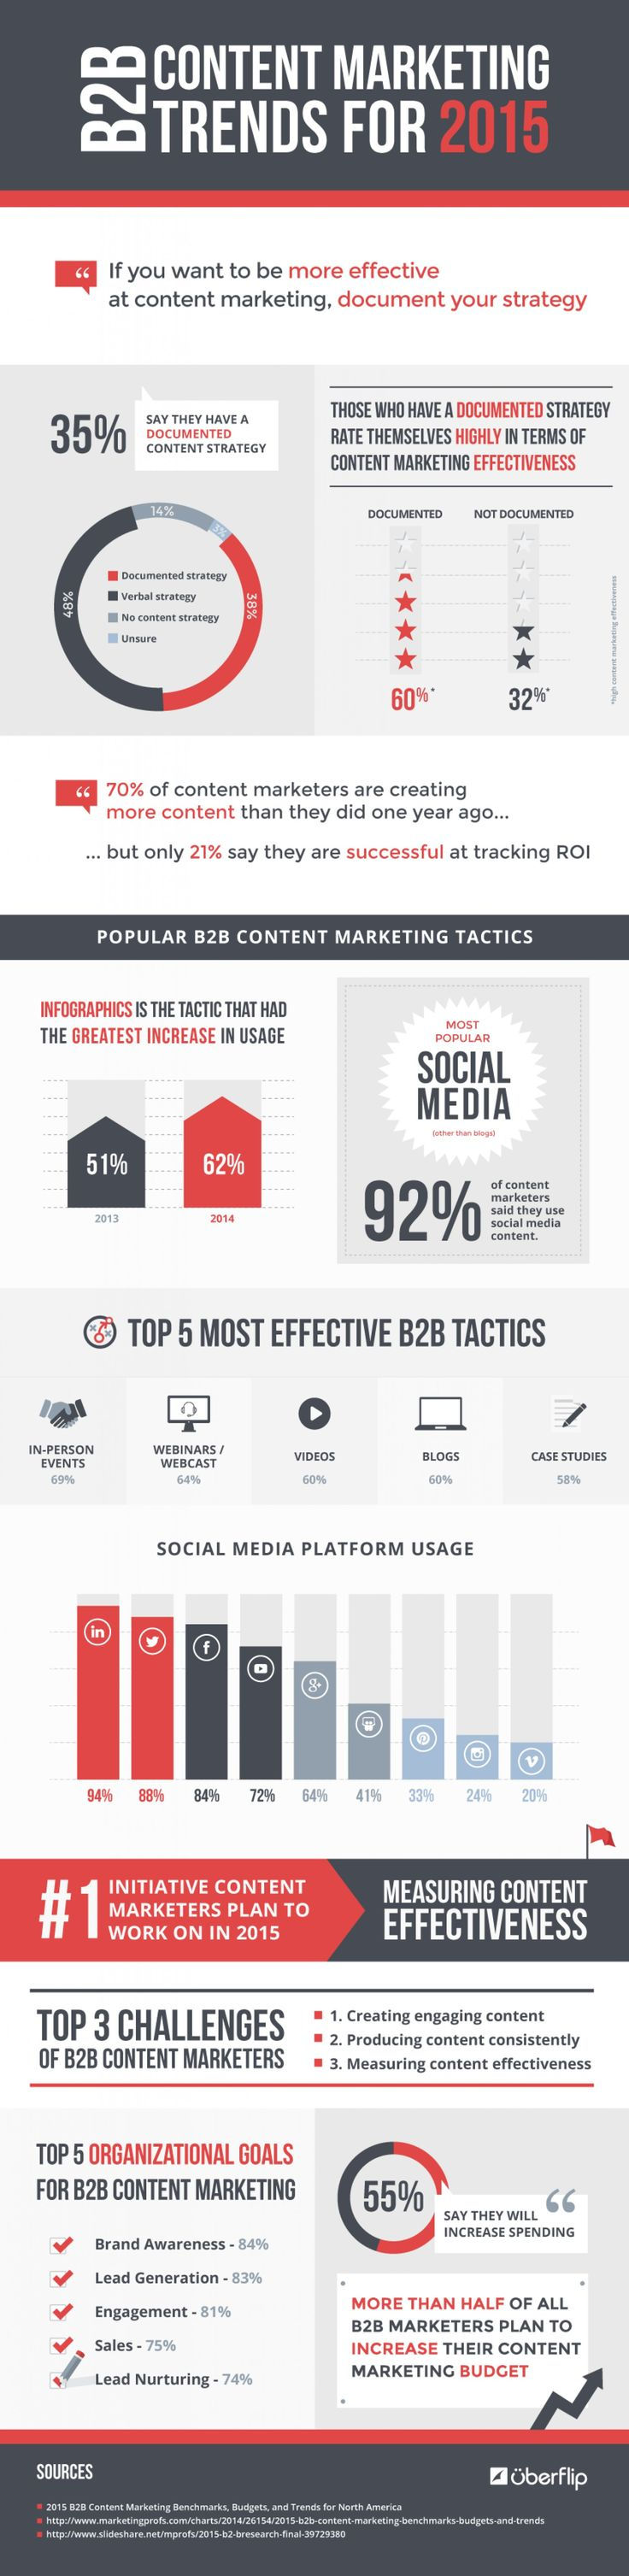 B2B Content Marketing Trends for 2015 #infographic